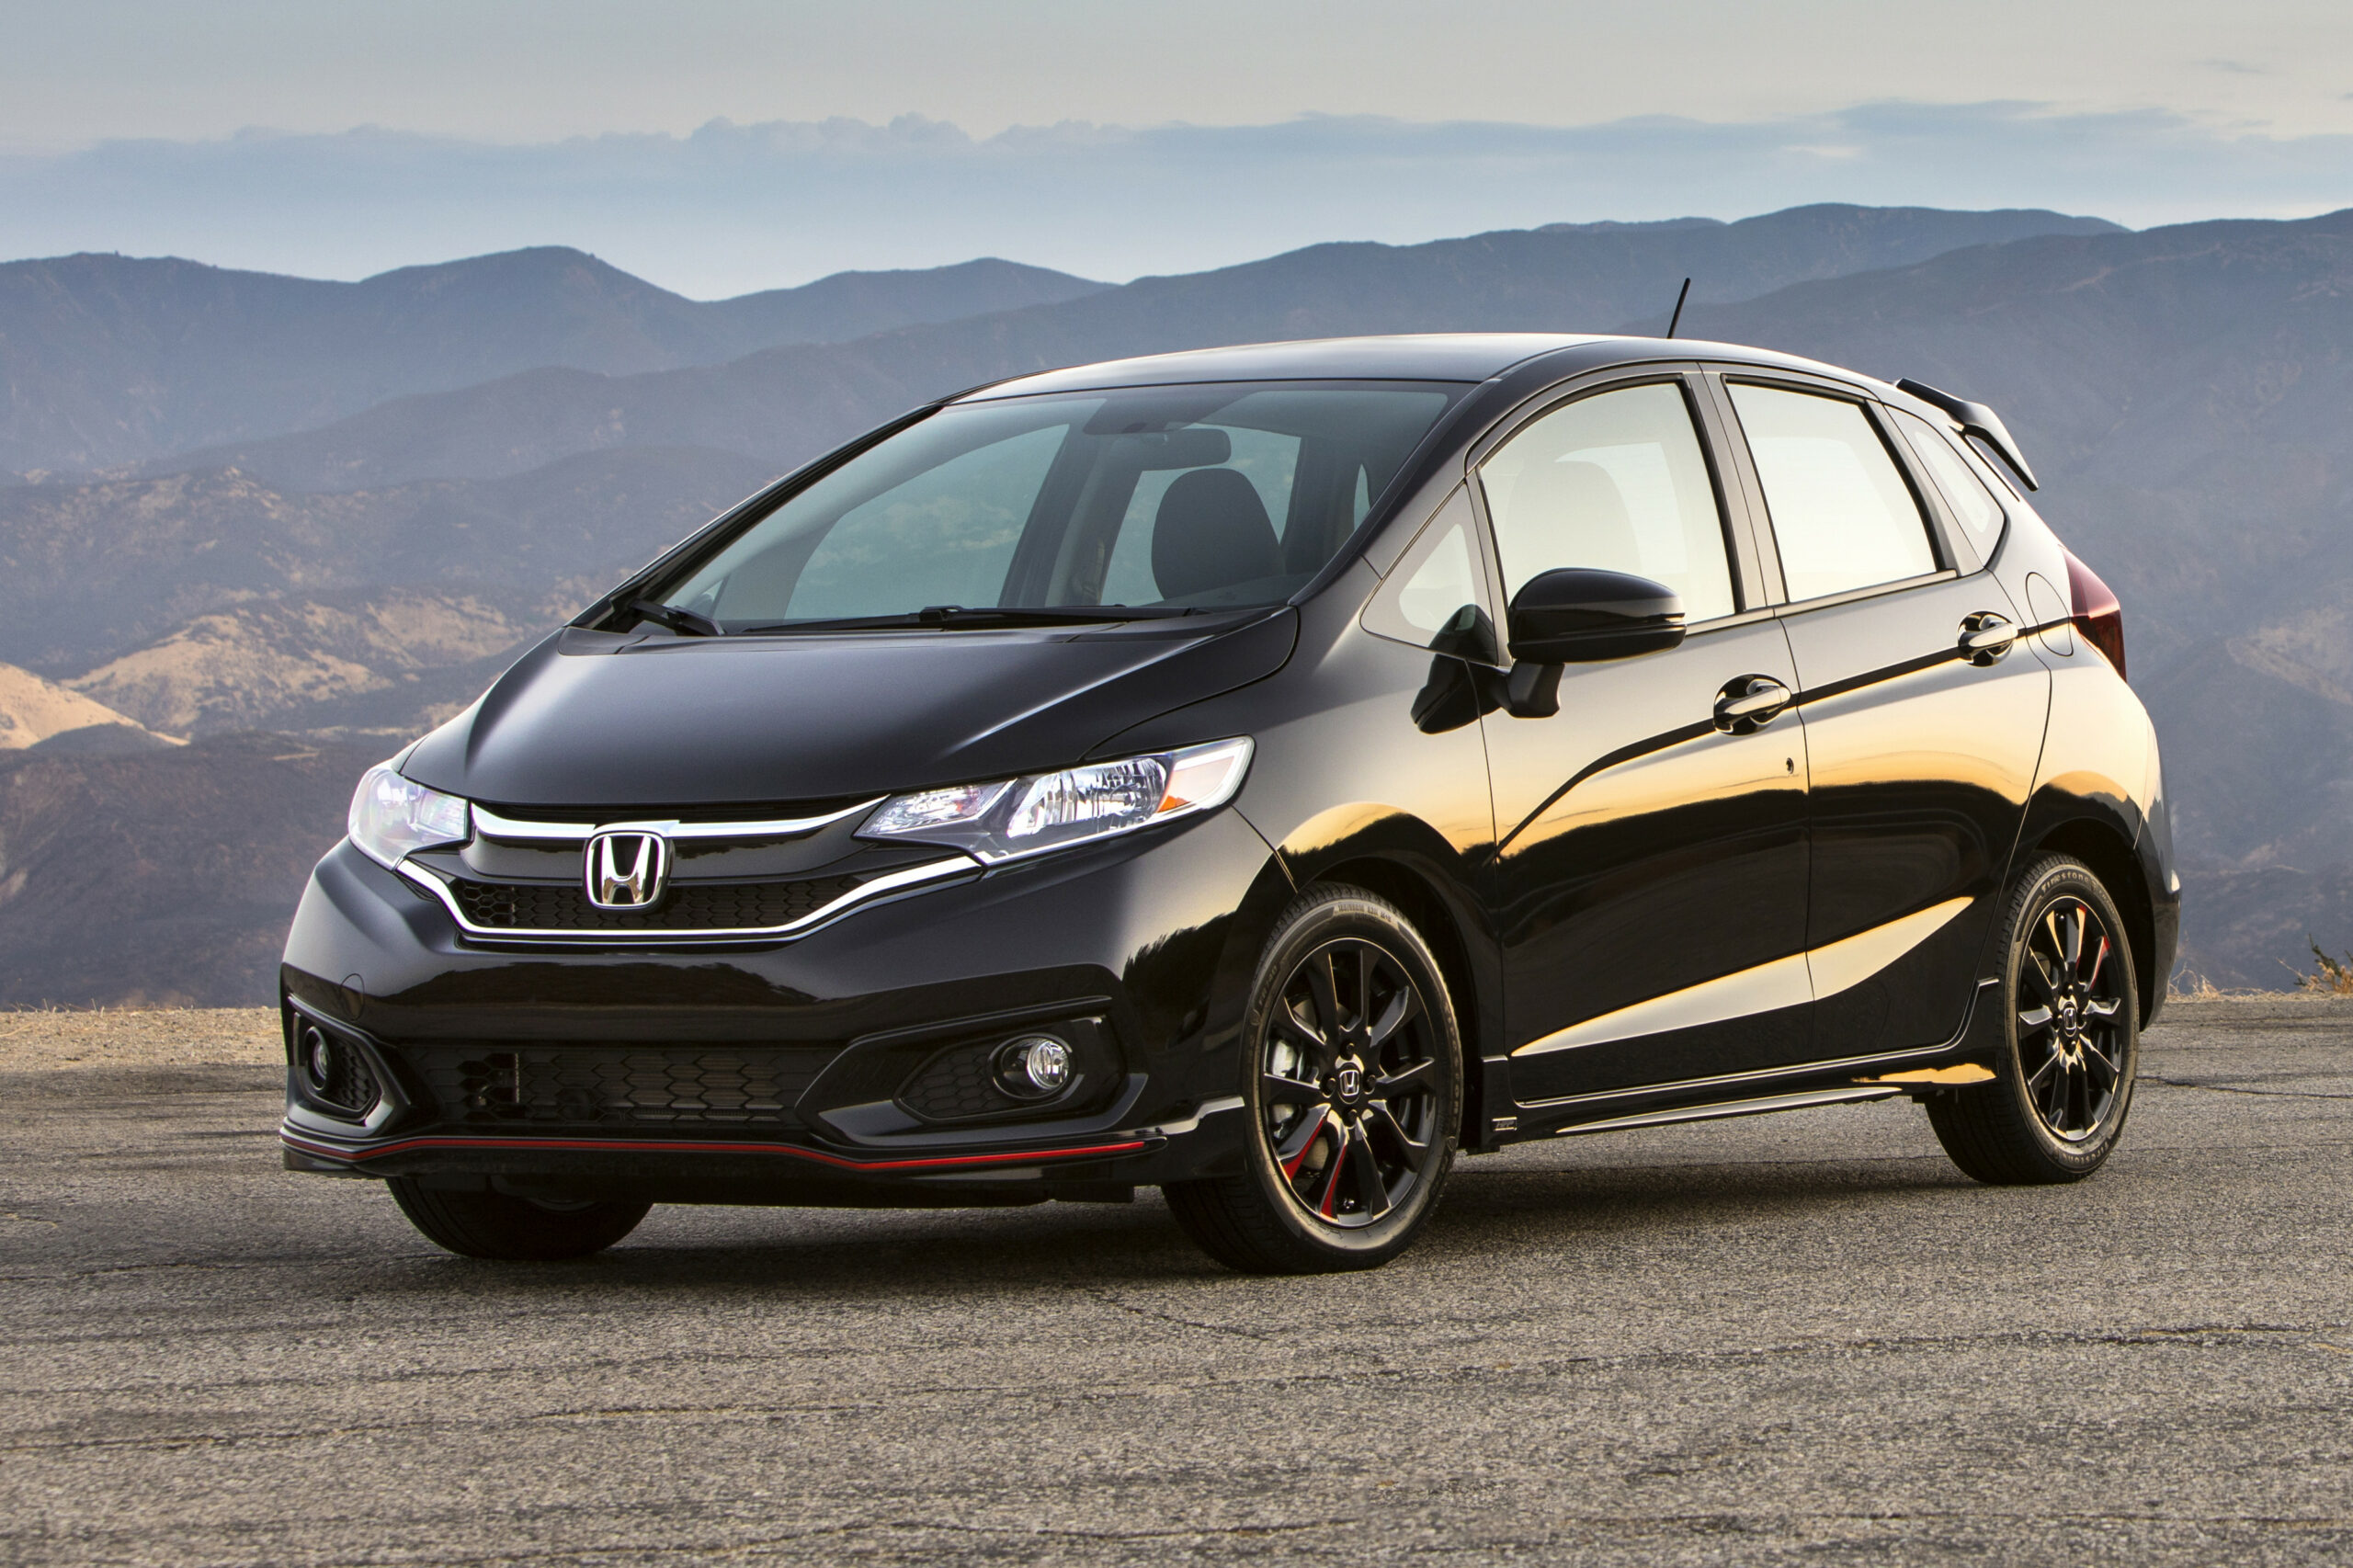 Honda Fit: Which Should You Buy, 9 or 9? | News | Cars.com